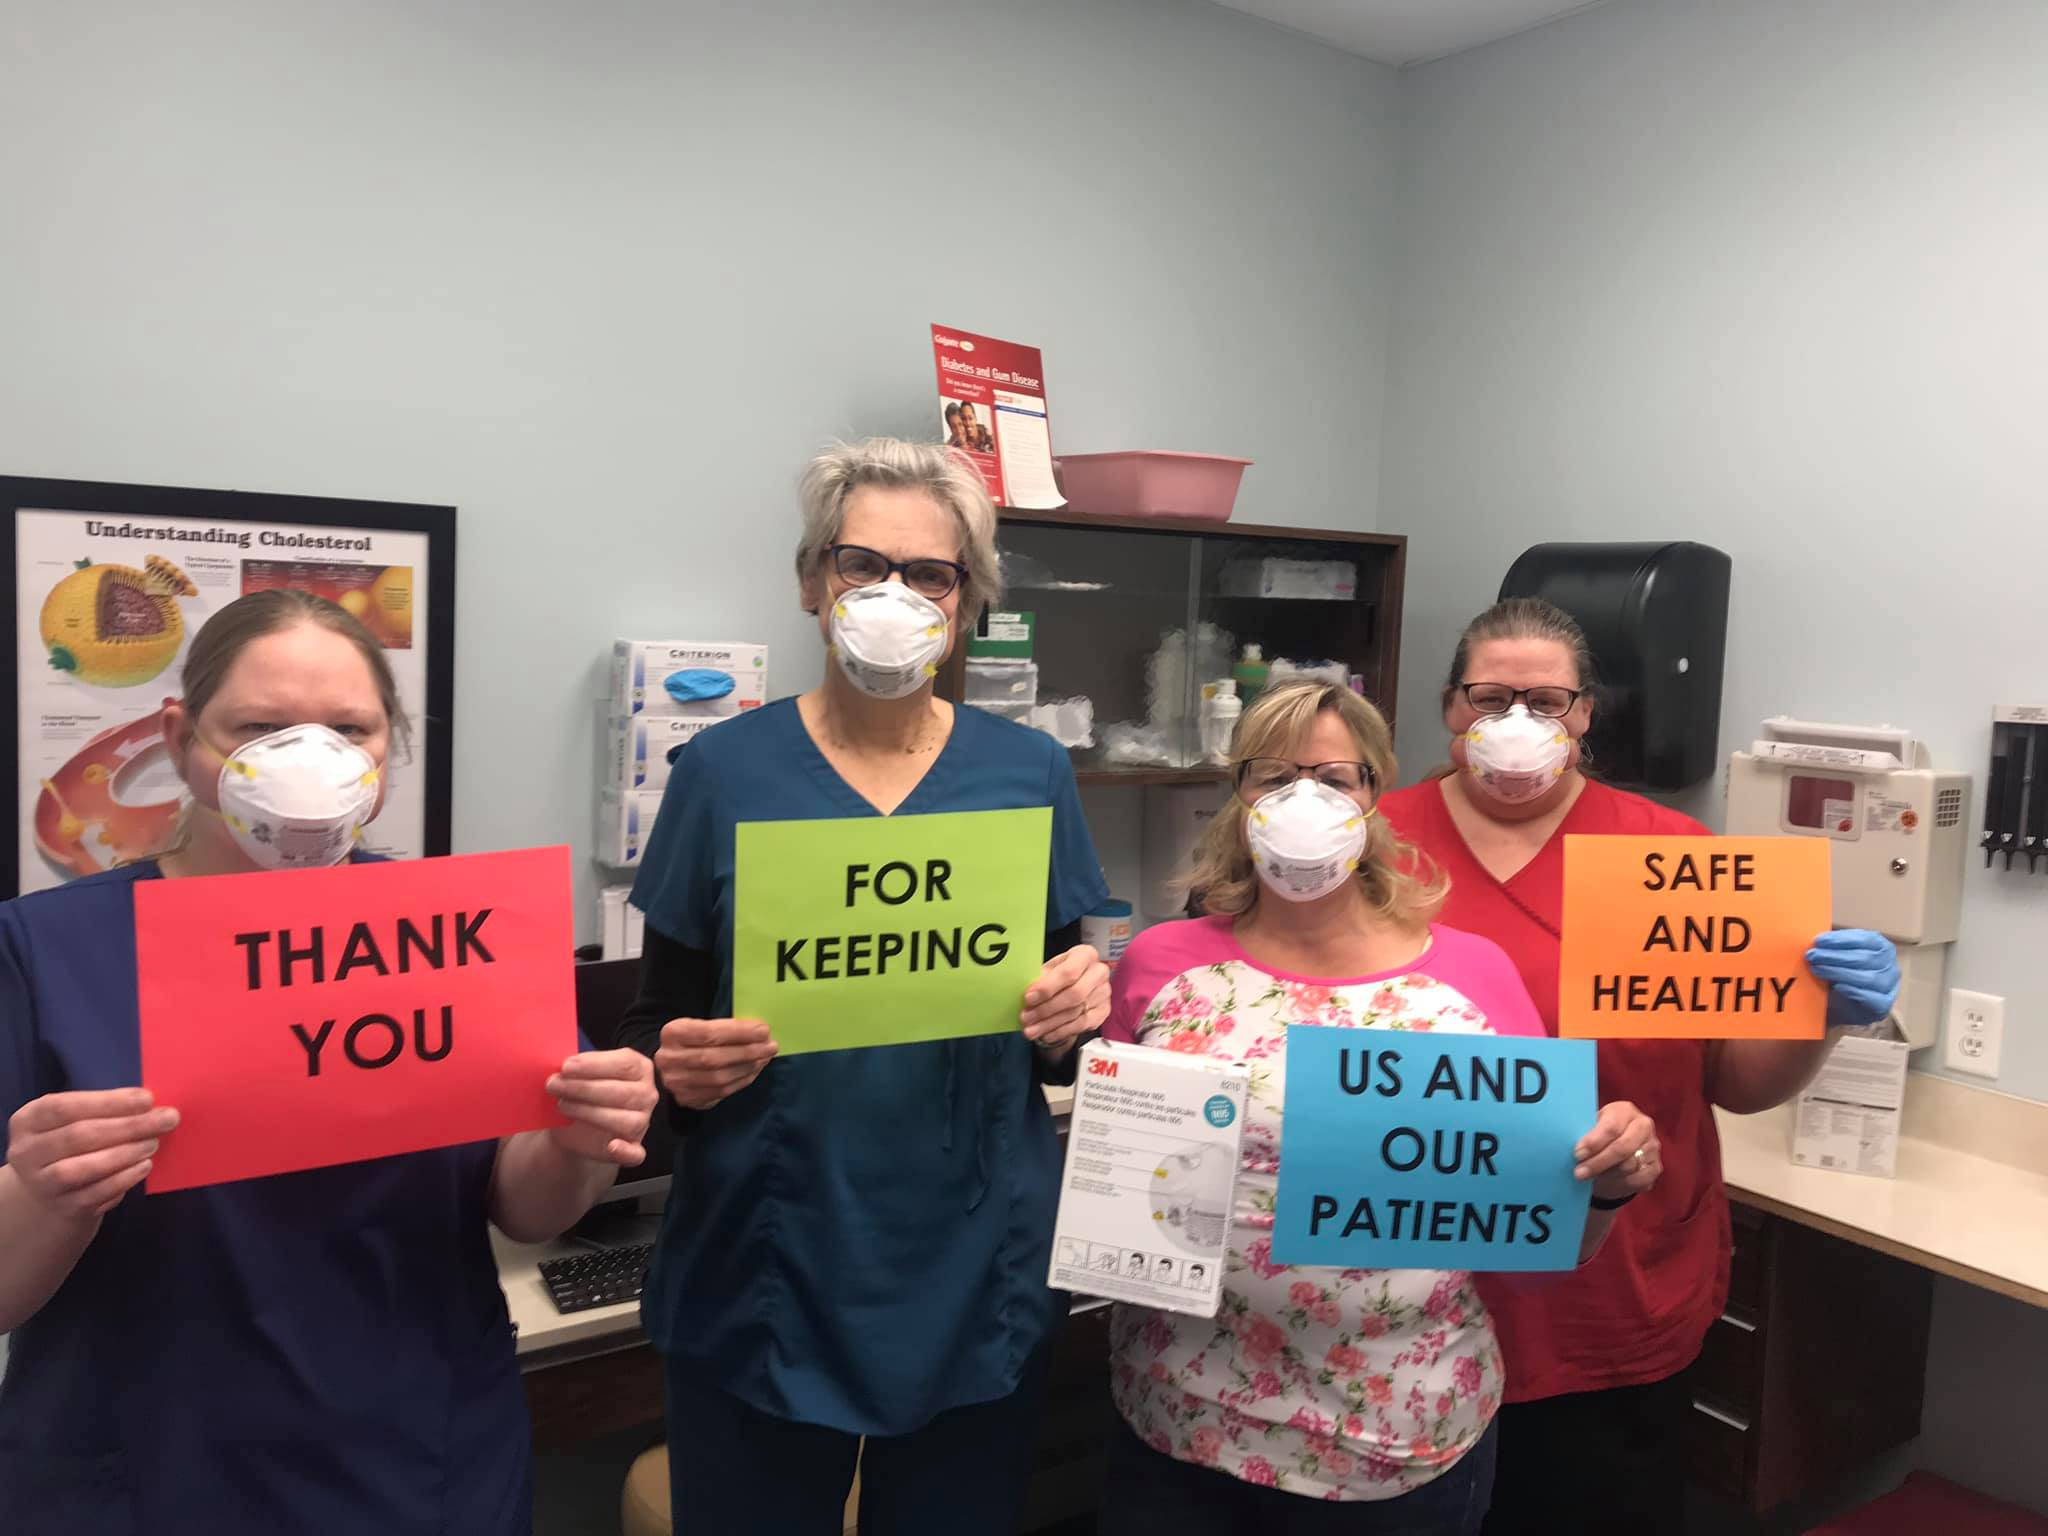 Medical staff holding up signs that say 'Thank you for keeping us and our patients safe and healthy.'